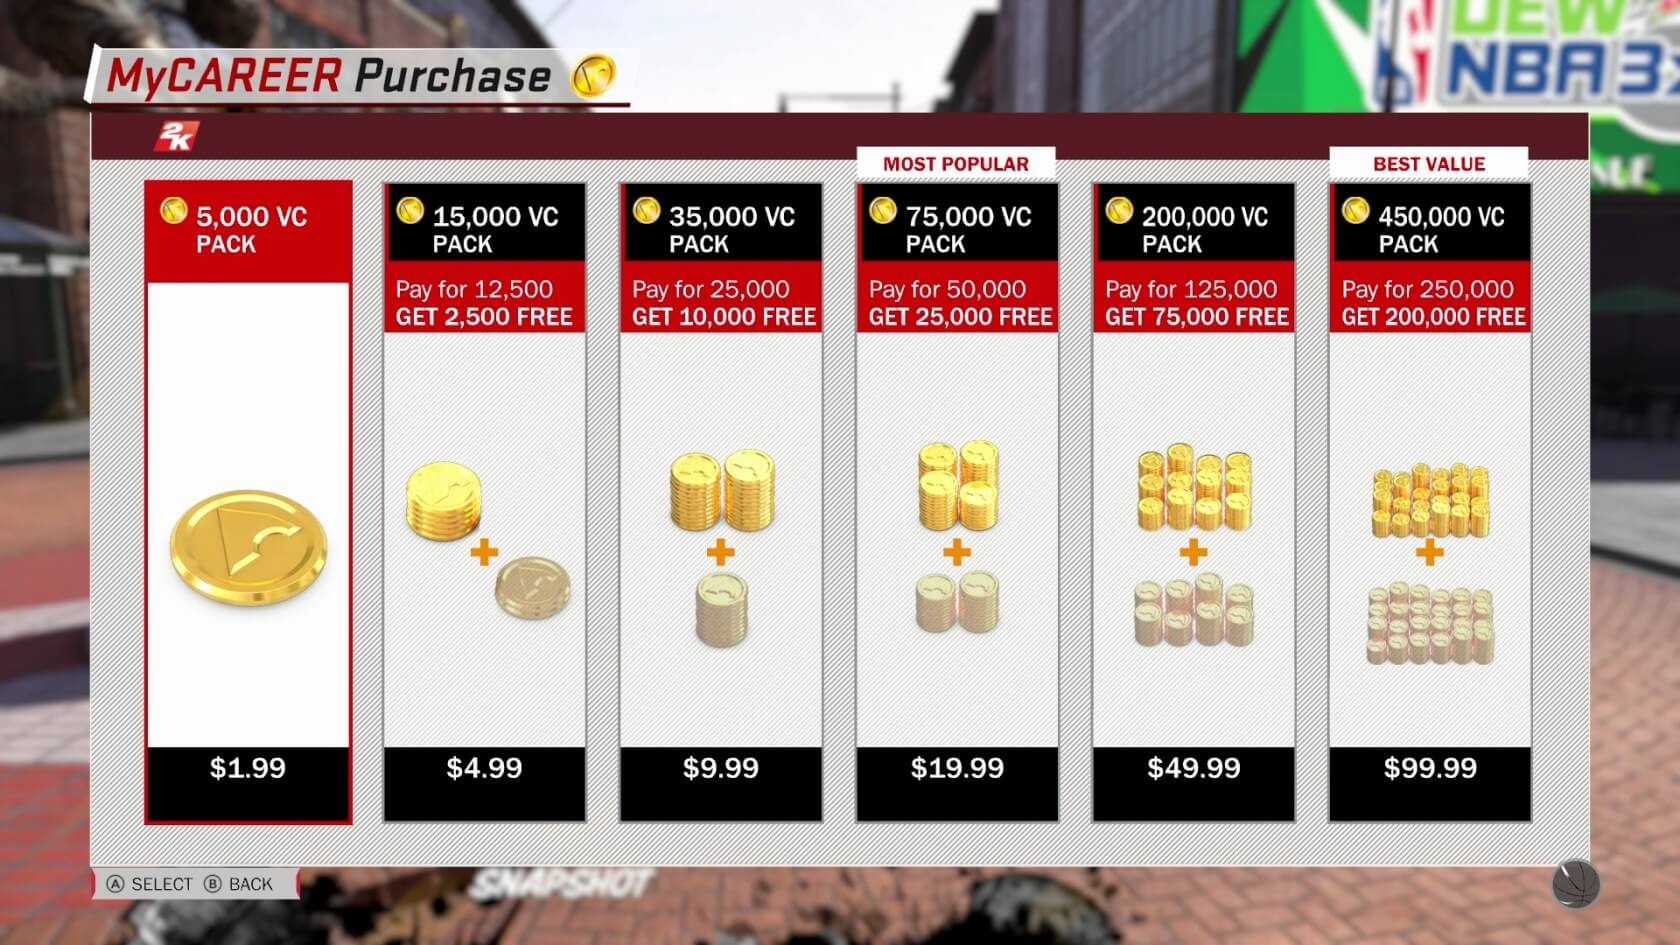 NBA 2K19 producer says microtransactions are an